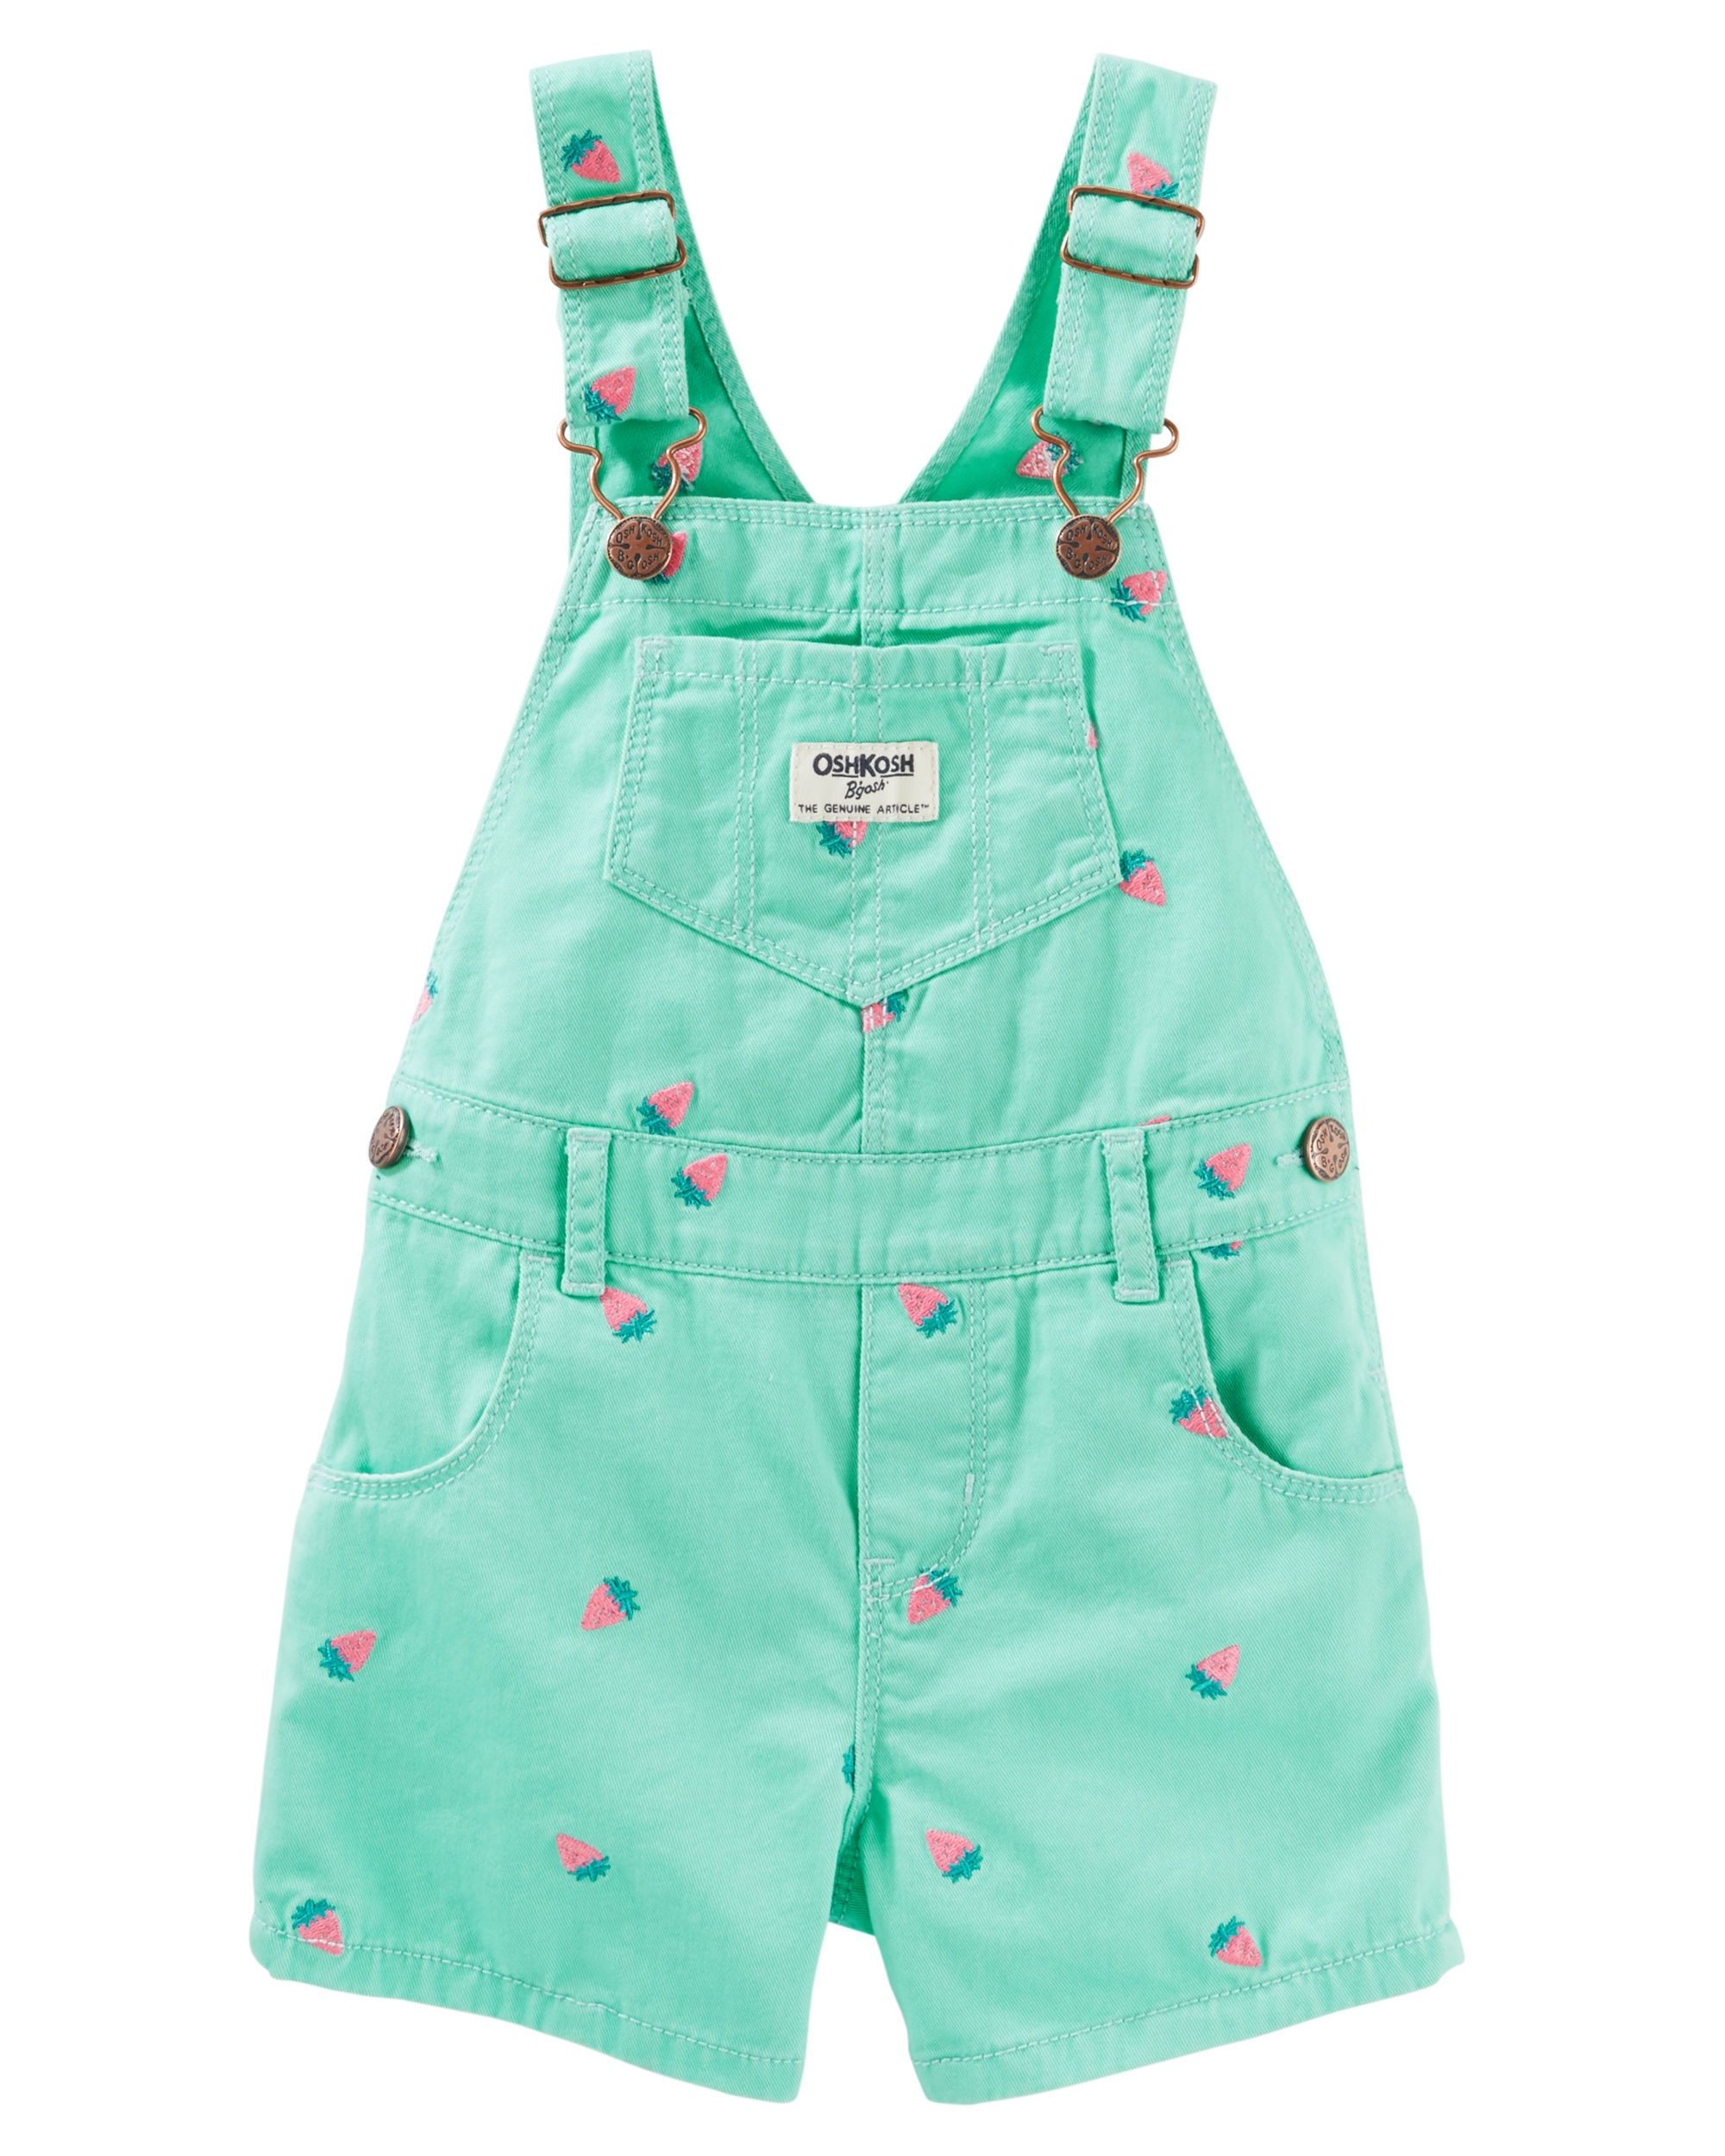 Today, September 13th only, head on over to hereffil53.cf where you can score Nannette Kids Shortalls & Rompers for just $ (regularly $36).. At this great price, consider grabbing a few Shortalls for your kiddos to have available for next summer!